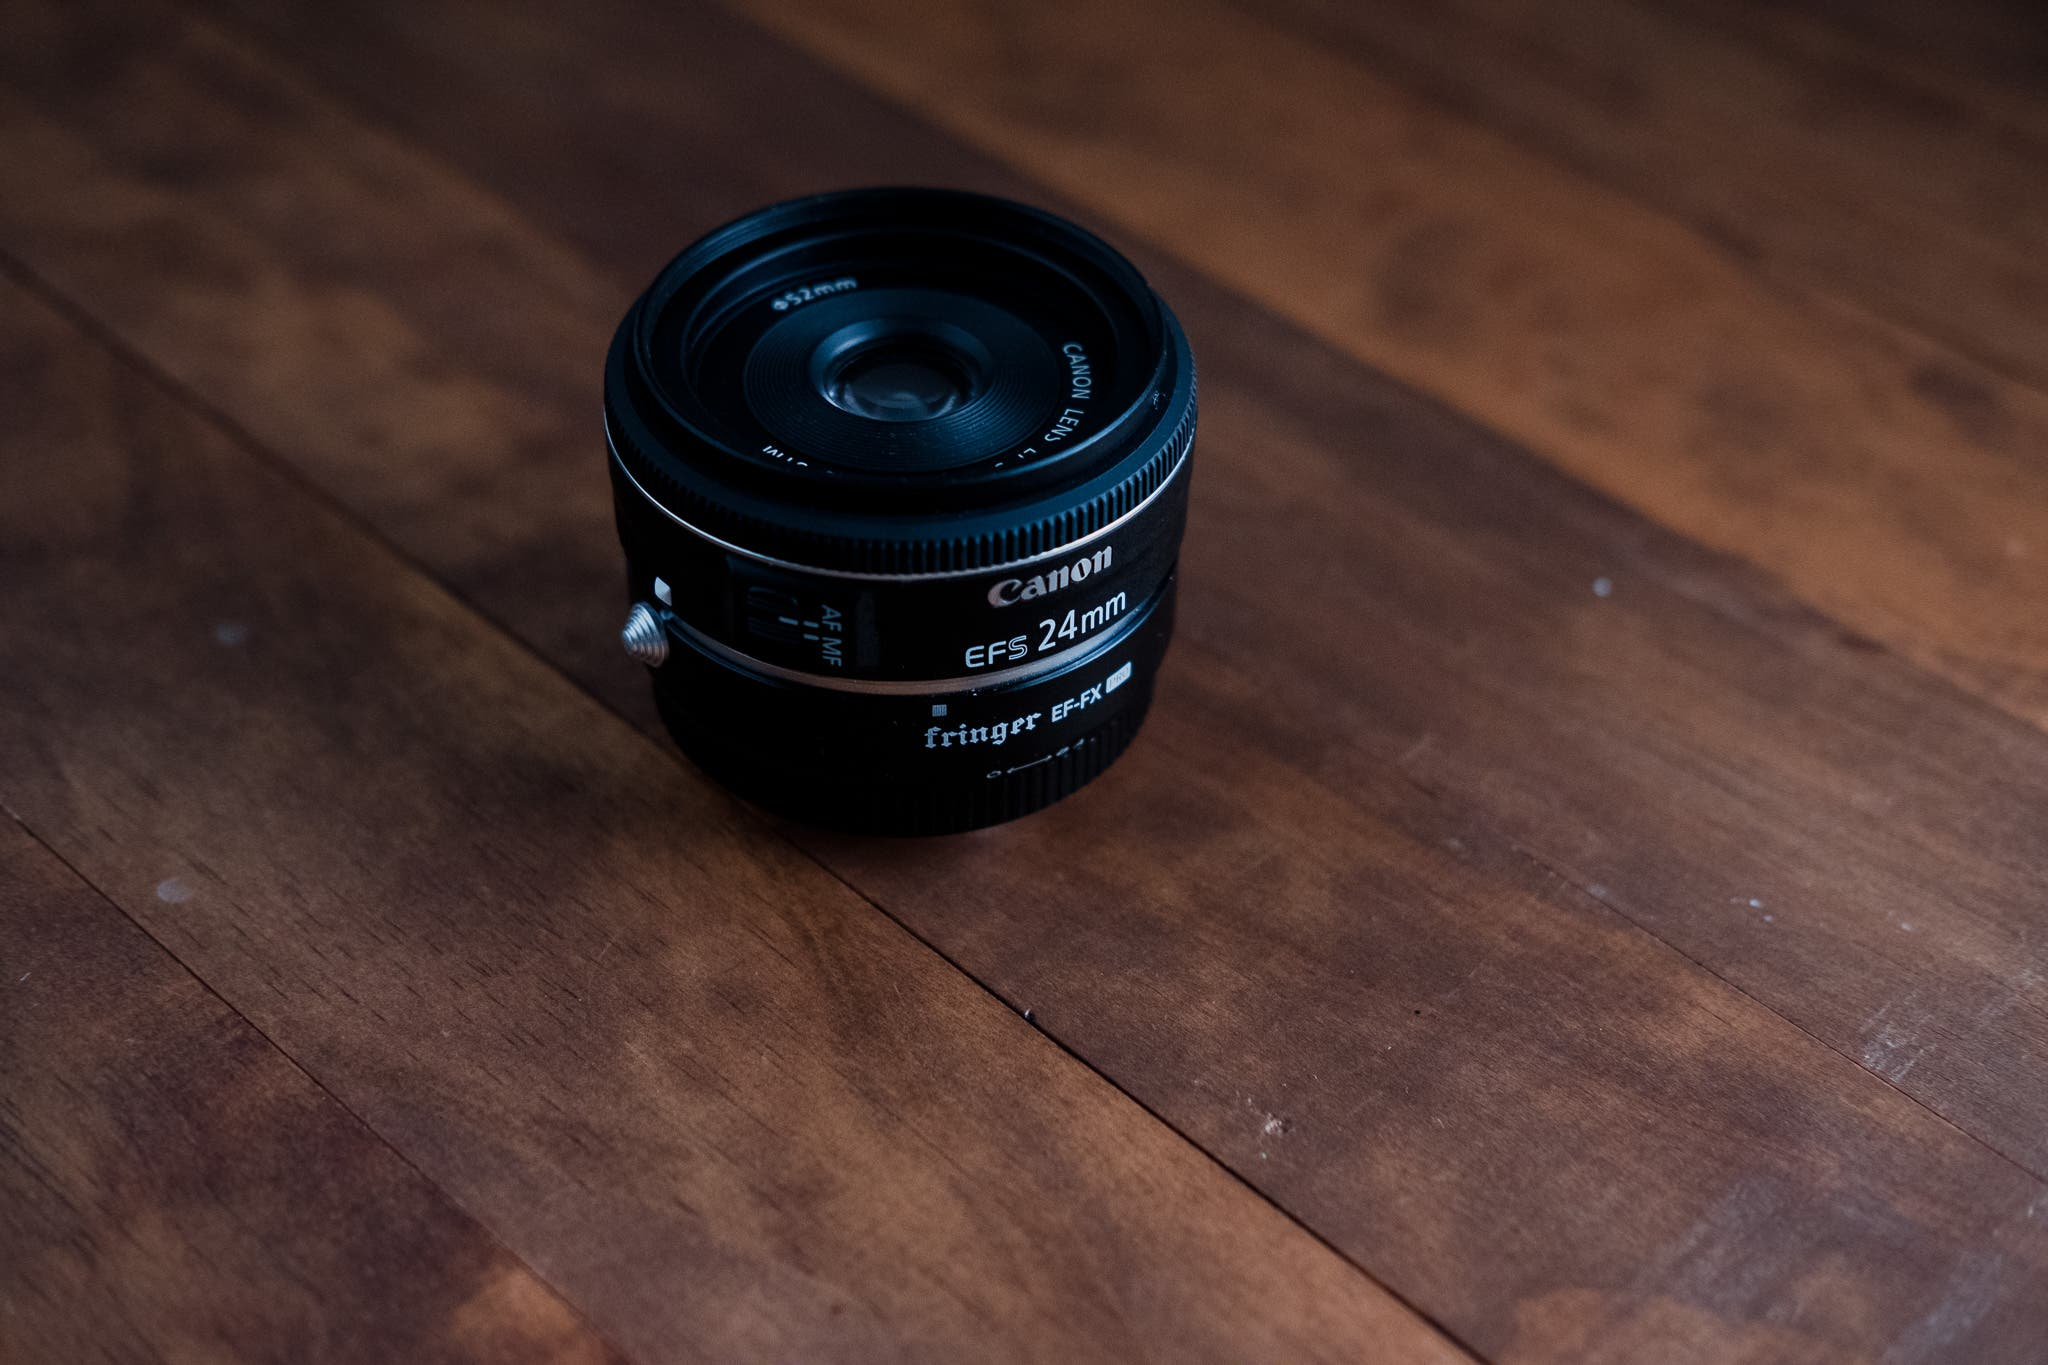 Adapter Review: Fringer EF-FX Pro (Tested on the Fujifilm X